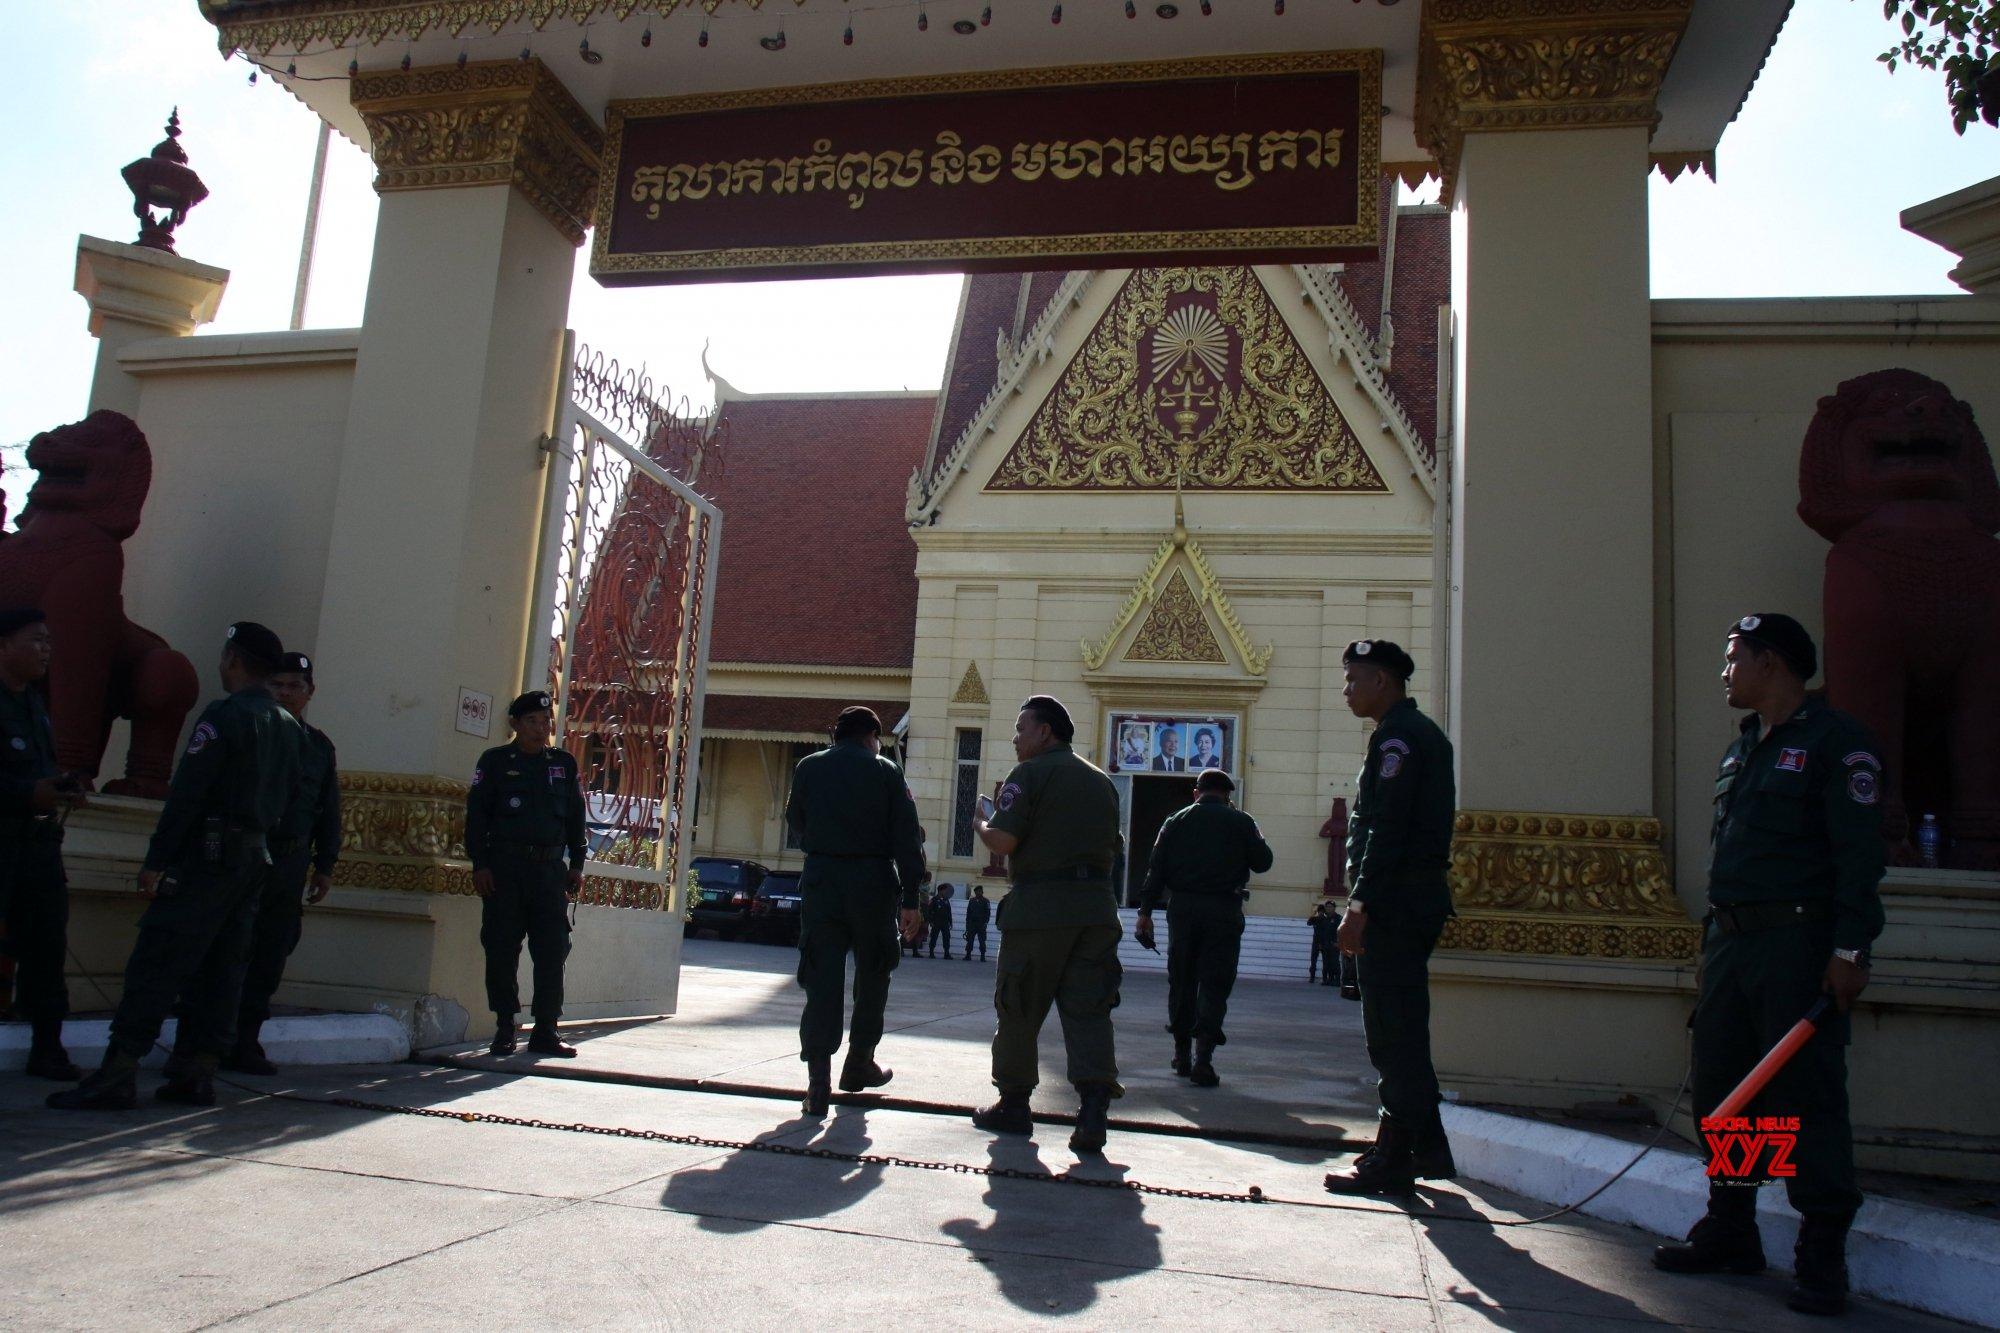 Transparency urged for Cambodian oppn leader's treason trial